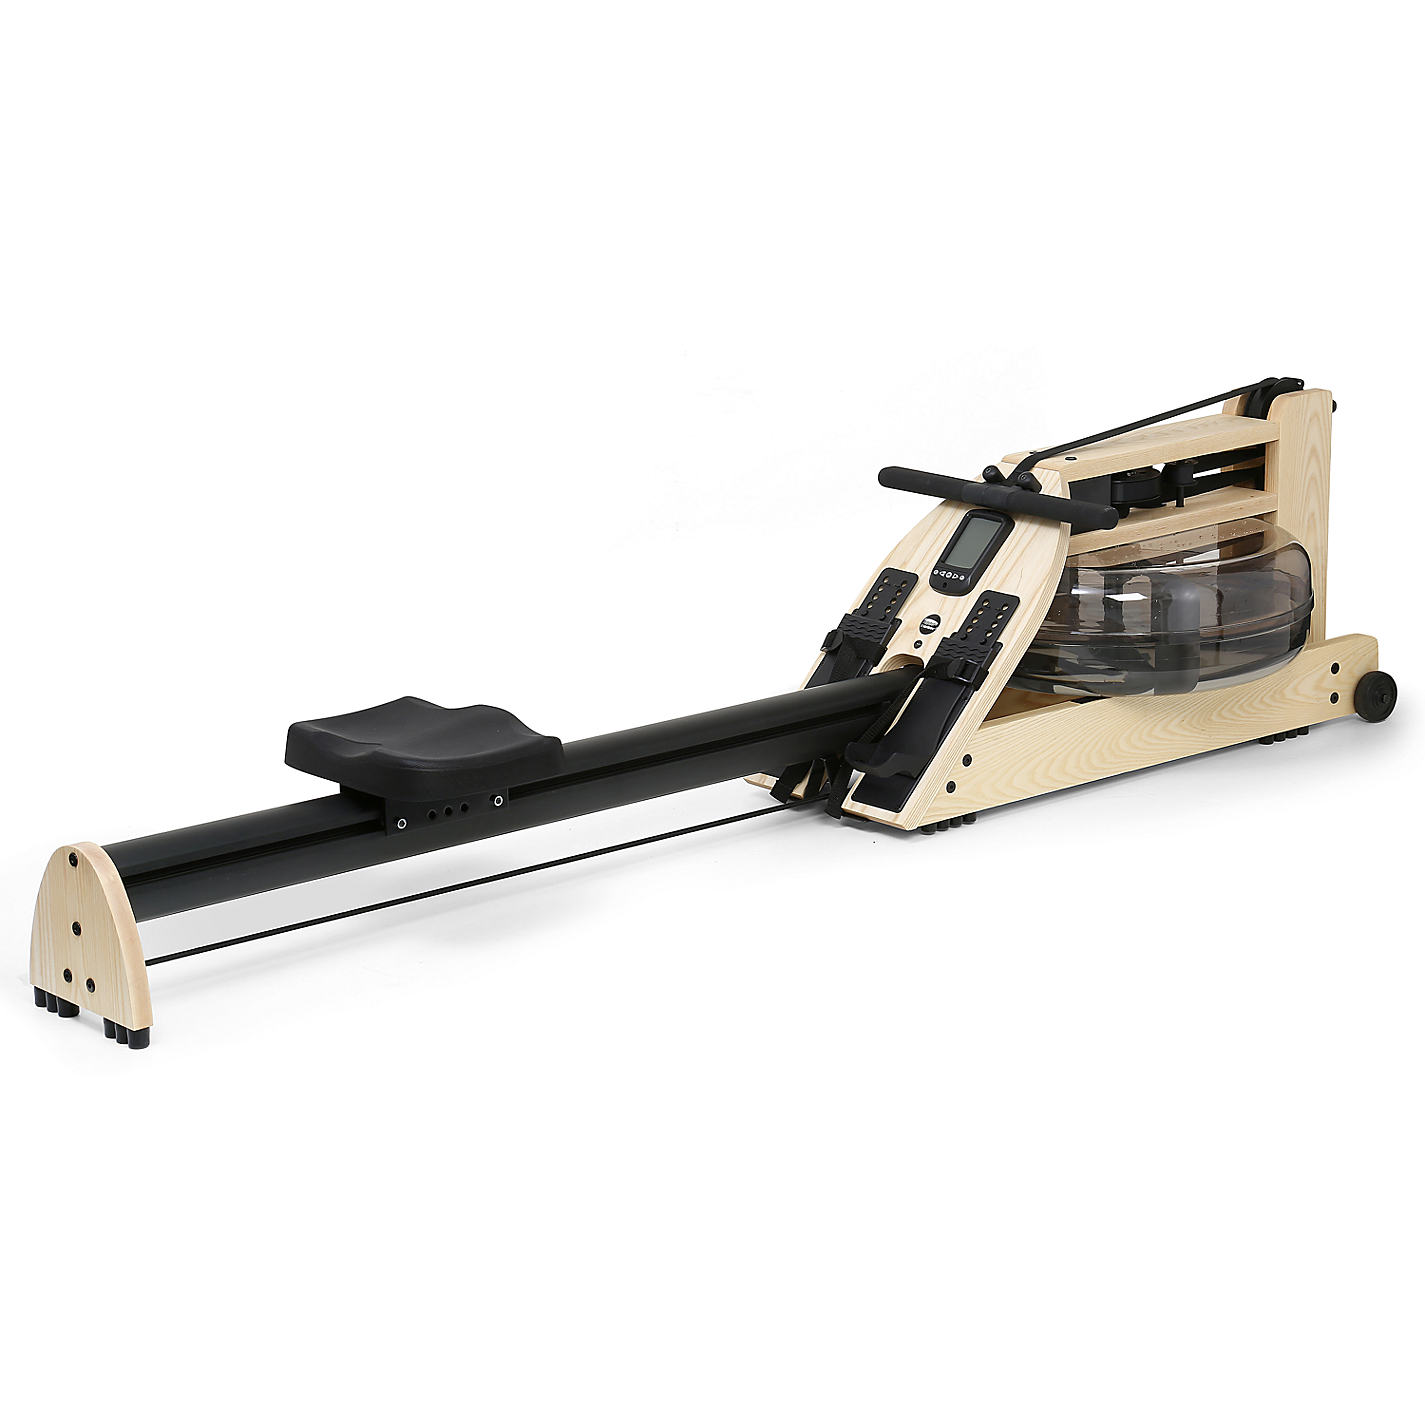 waterrower a1 rameur d 39 eau livraison 48 72h au meilleur prix. Black Bedroom Furniture Sets. Home Design Ideas